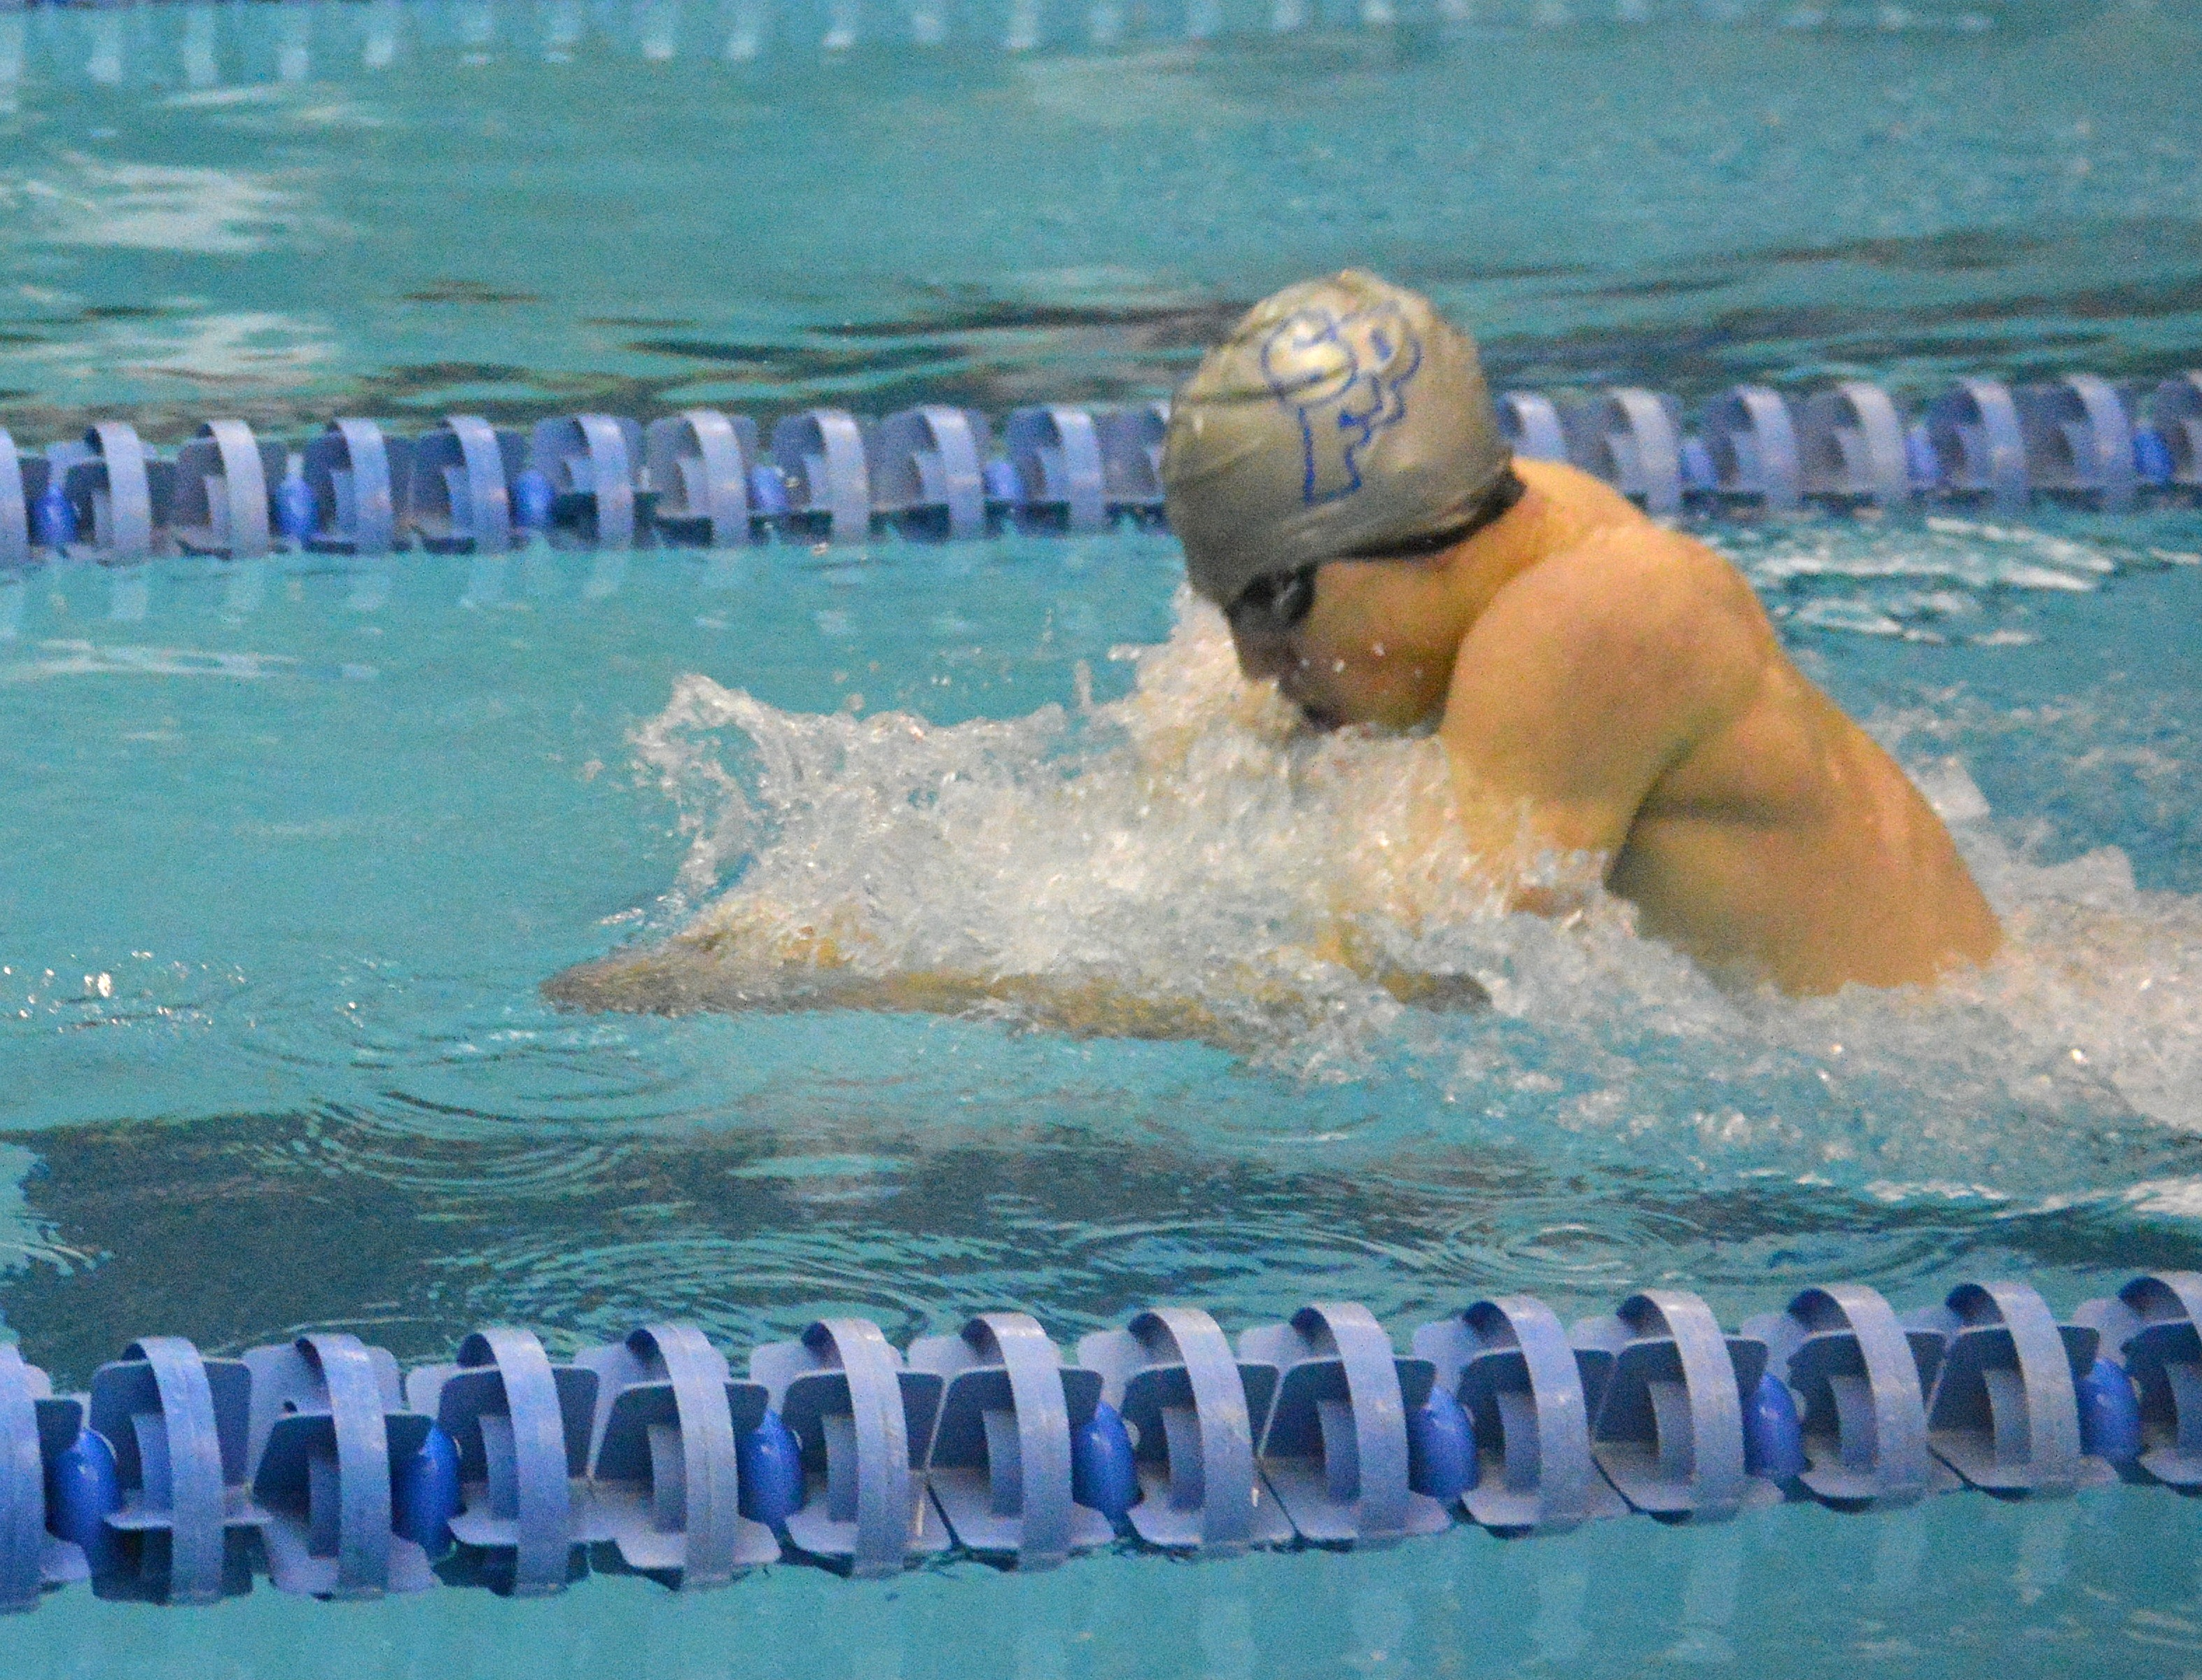 728620a7bdae6b8e6ea2_WF-SPF_Chris_Bondarowicz_swims_in_100_Breast.JPG